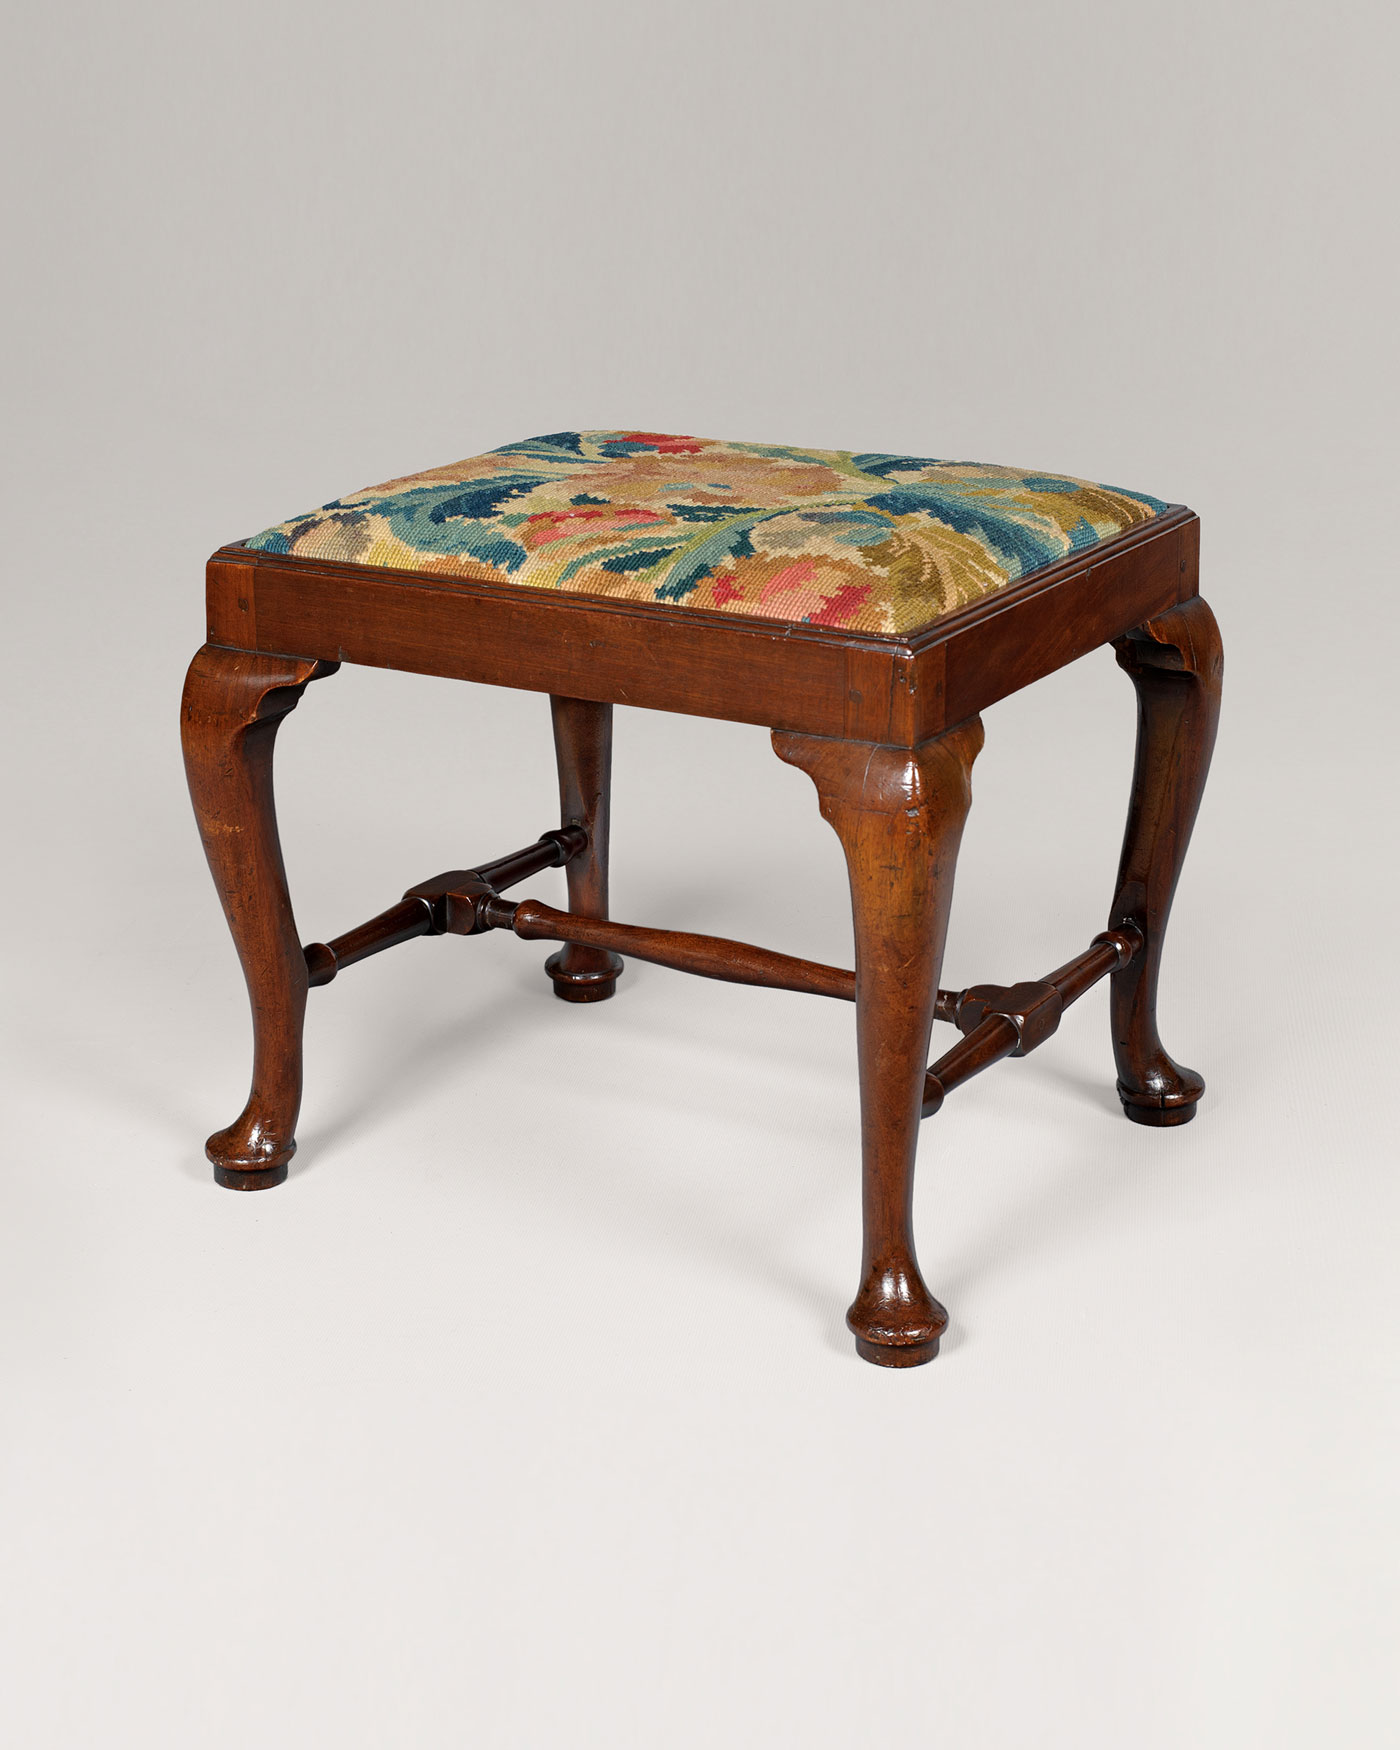 GEORGE II PERIOD STOOL WITH 18TH CENTURY NEEDLEWORK